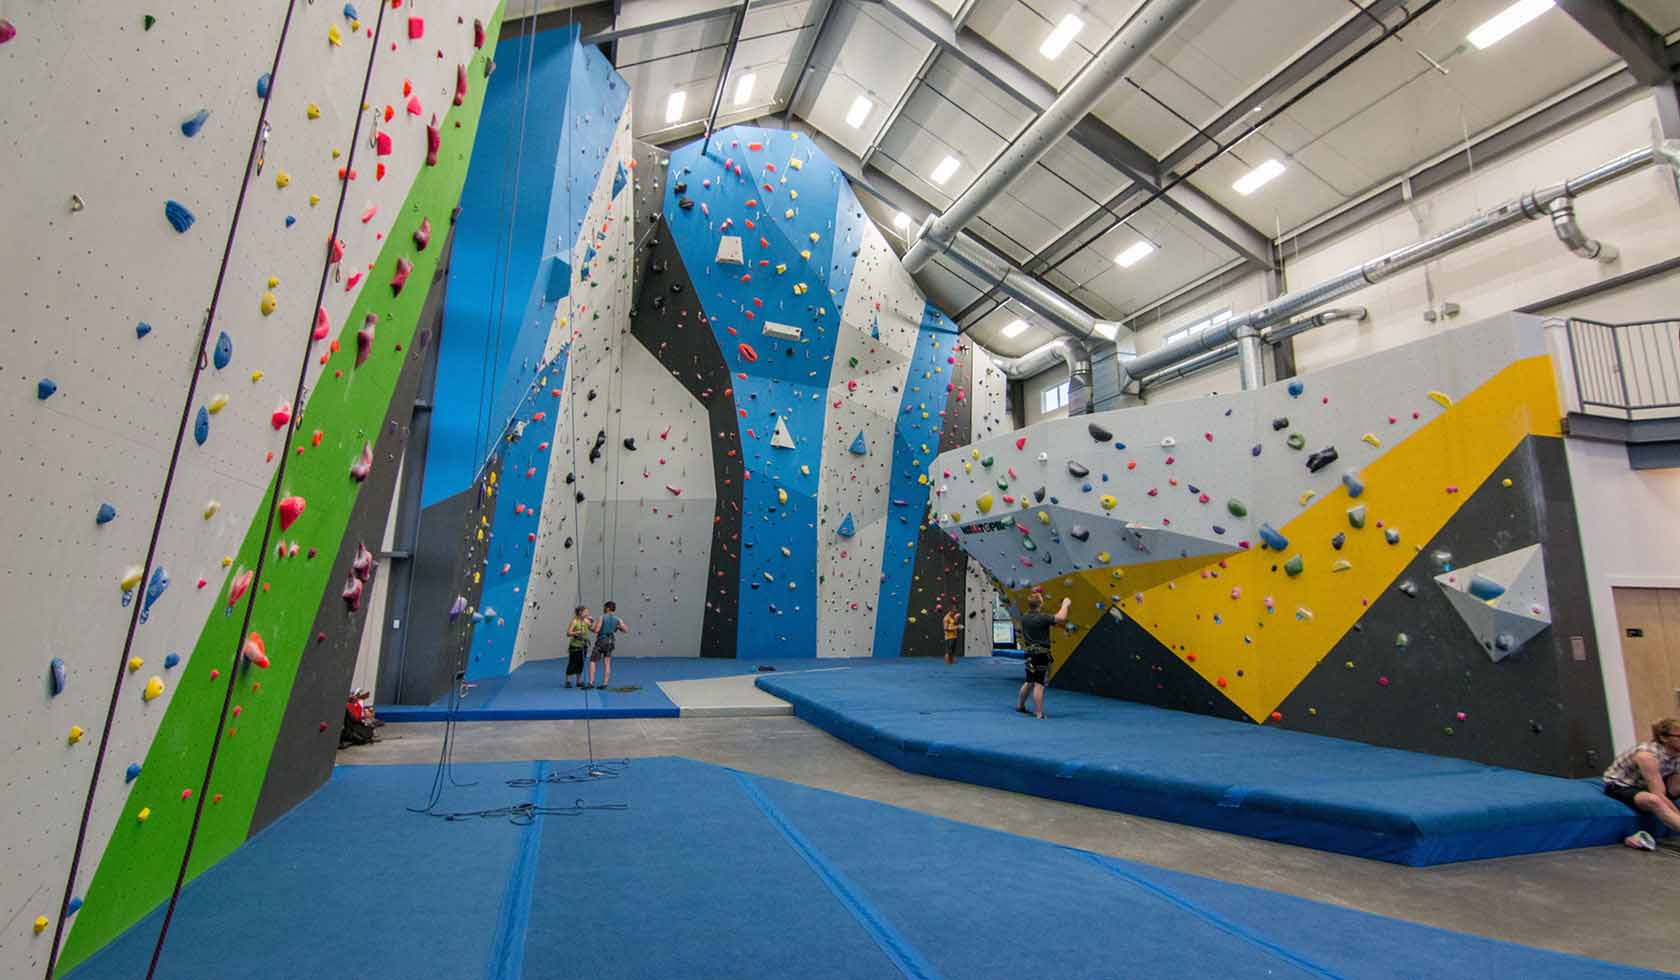 Spire Climbing Center profile image